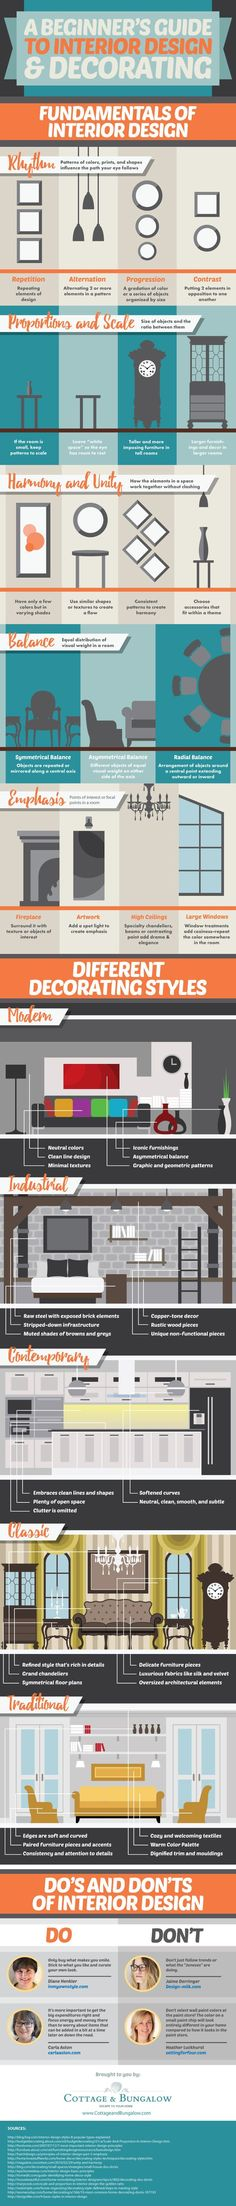 The Beginneru0027s Guide to Interior Design and